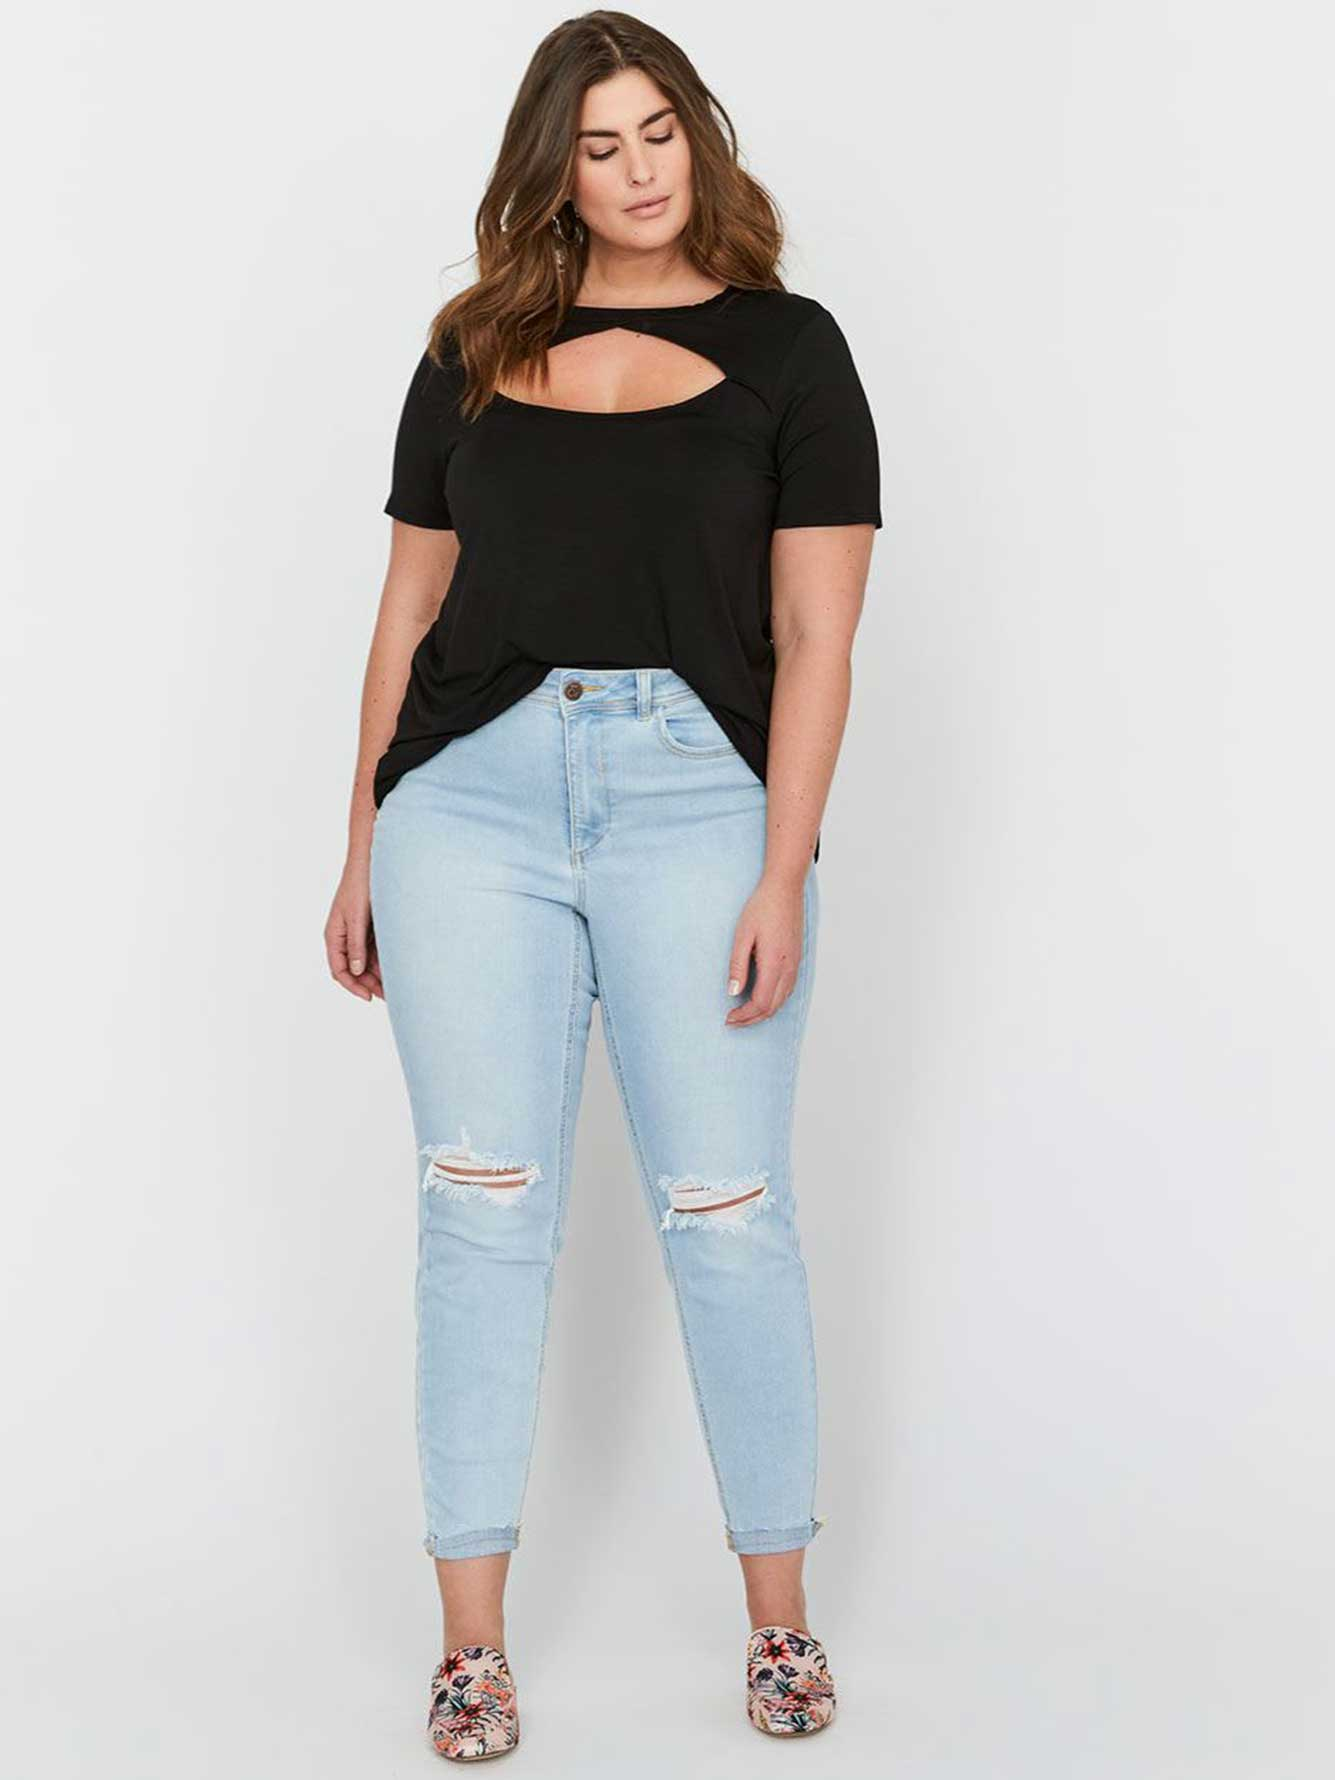 L&L Authentic Skinny Denim with Bleach, Rips & Released Hem